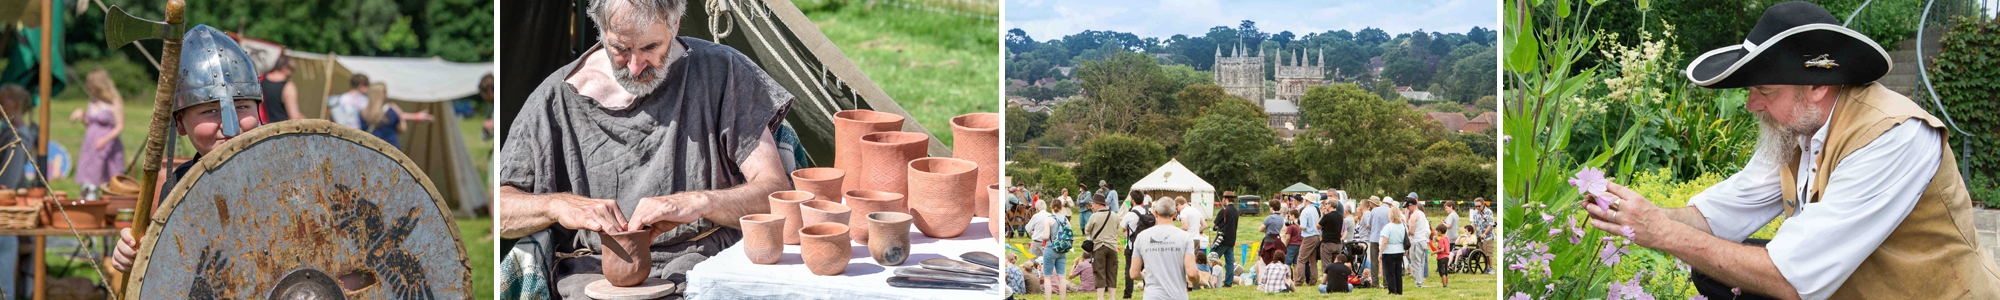 2016 Young Viking Pottery View Physick Garden